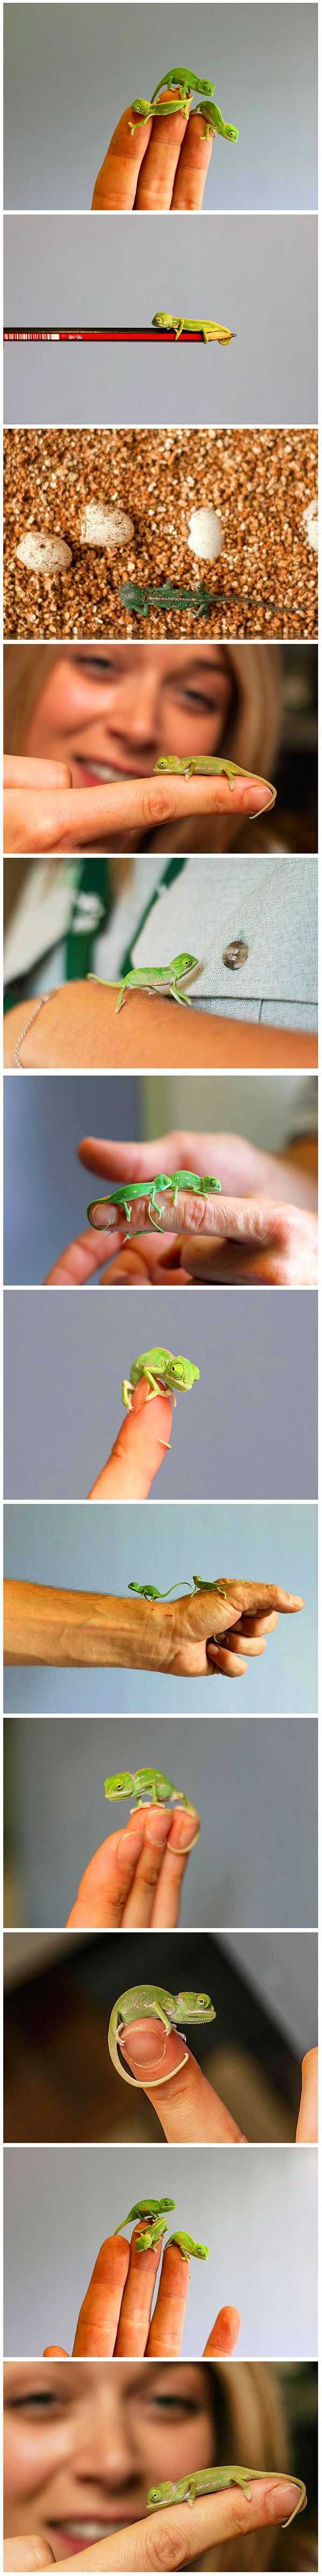 If you've ever had any doubt about how cute reptiles can be, let us end those doubts right now. This gang of more than 20 baby chameleons, recently hatched at Taronga Zoo in Sydney, Australia, is one of the cutest band of curious explorers that we've ever seen.